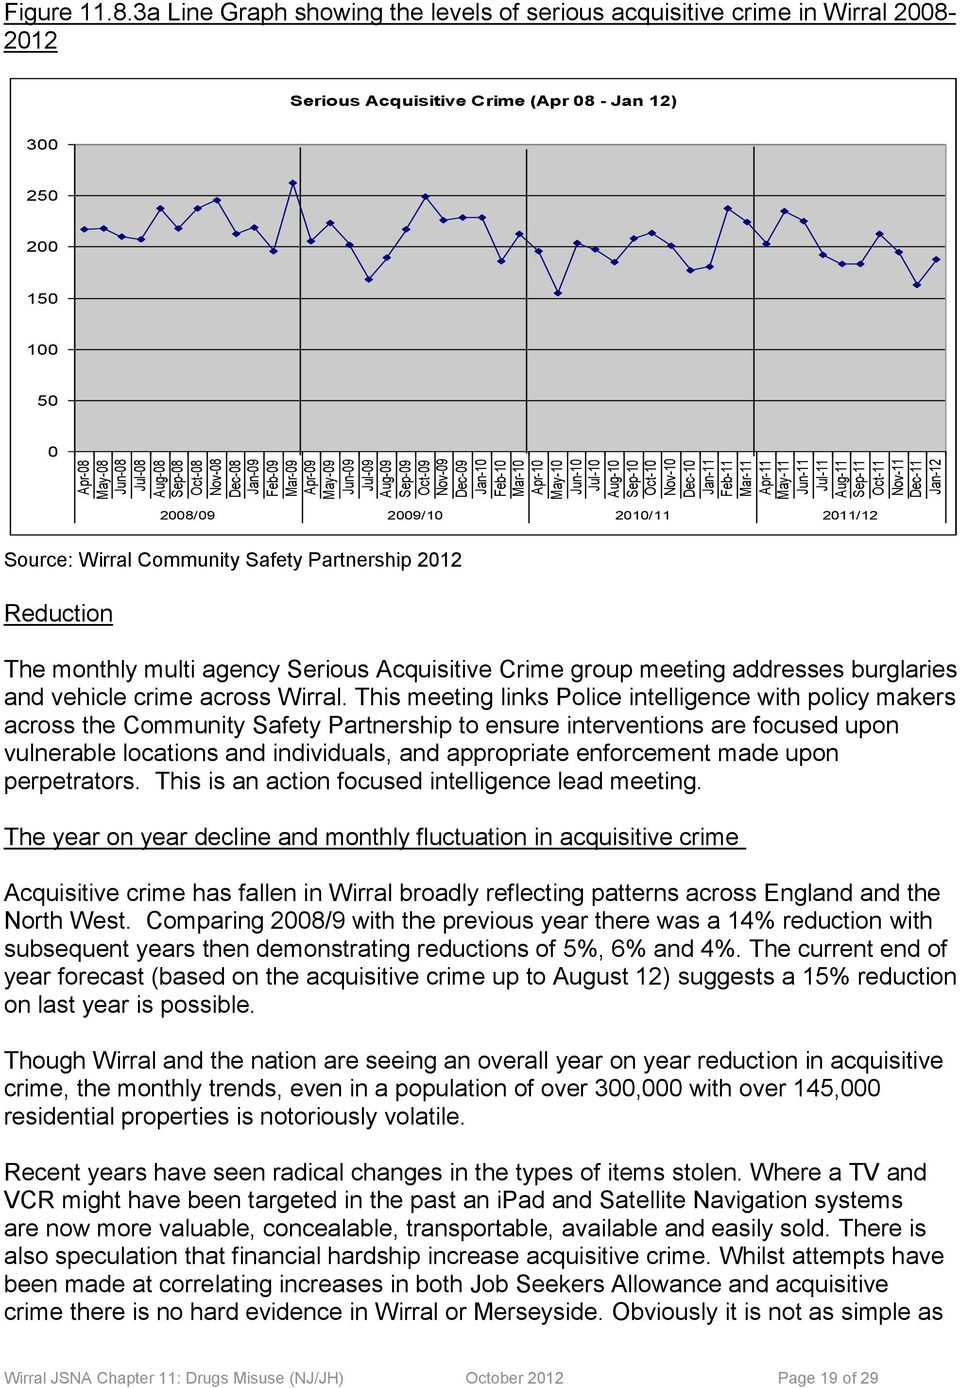 3a Line Graph showing the levels of serious acquisitive crime in Wirral 2008-2012 Serious Acquisitive Crime (Apr 08 - Jan 12) 300 250 200 150 100 50 0 2008/09 2009/10 2010/11 2011/12 Source: Wirral